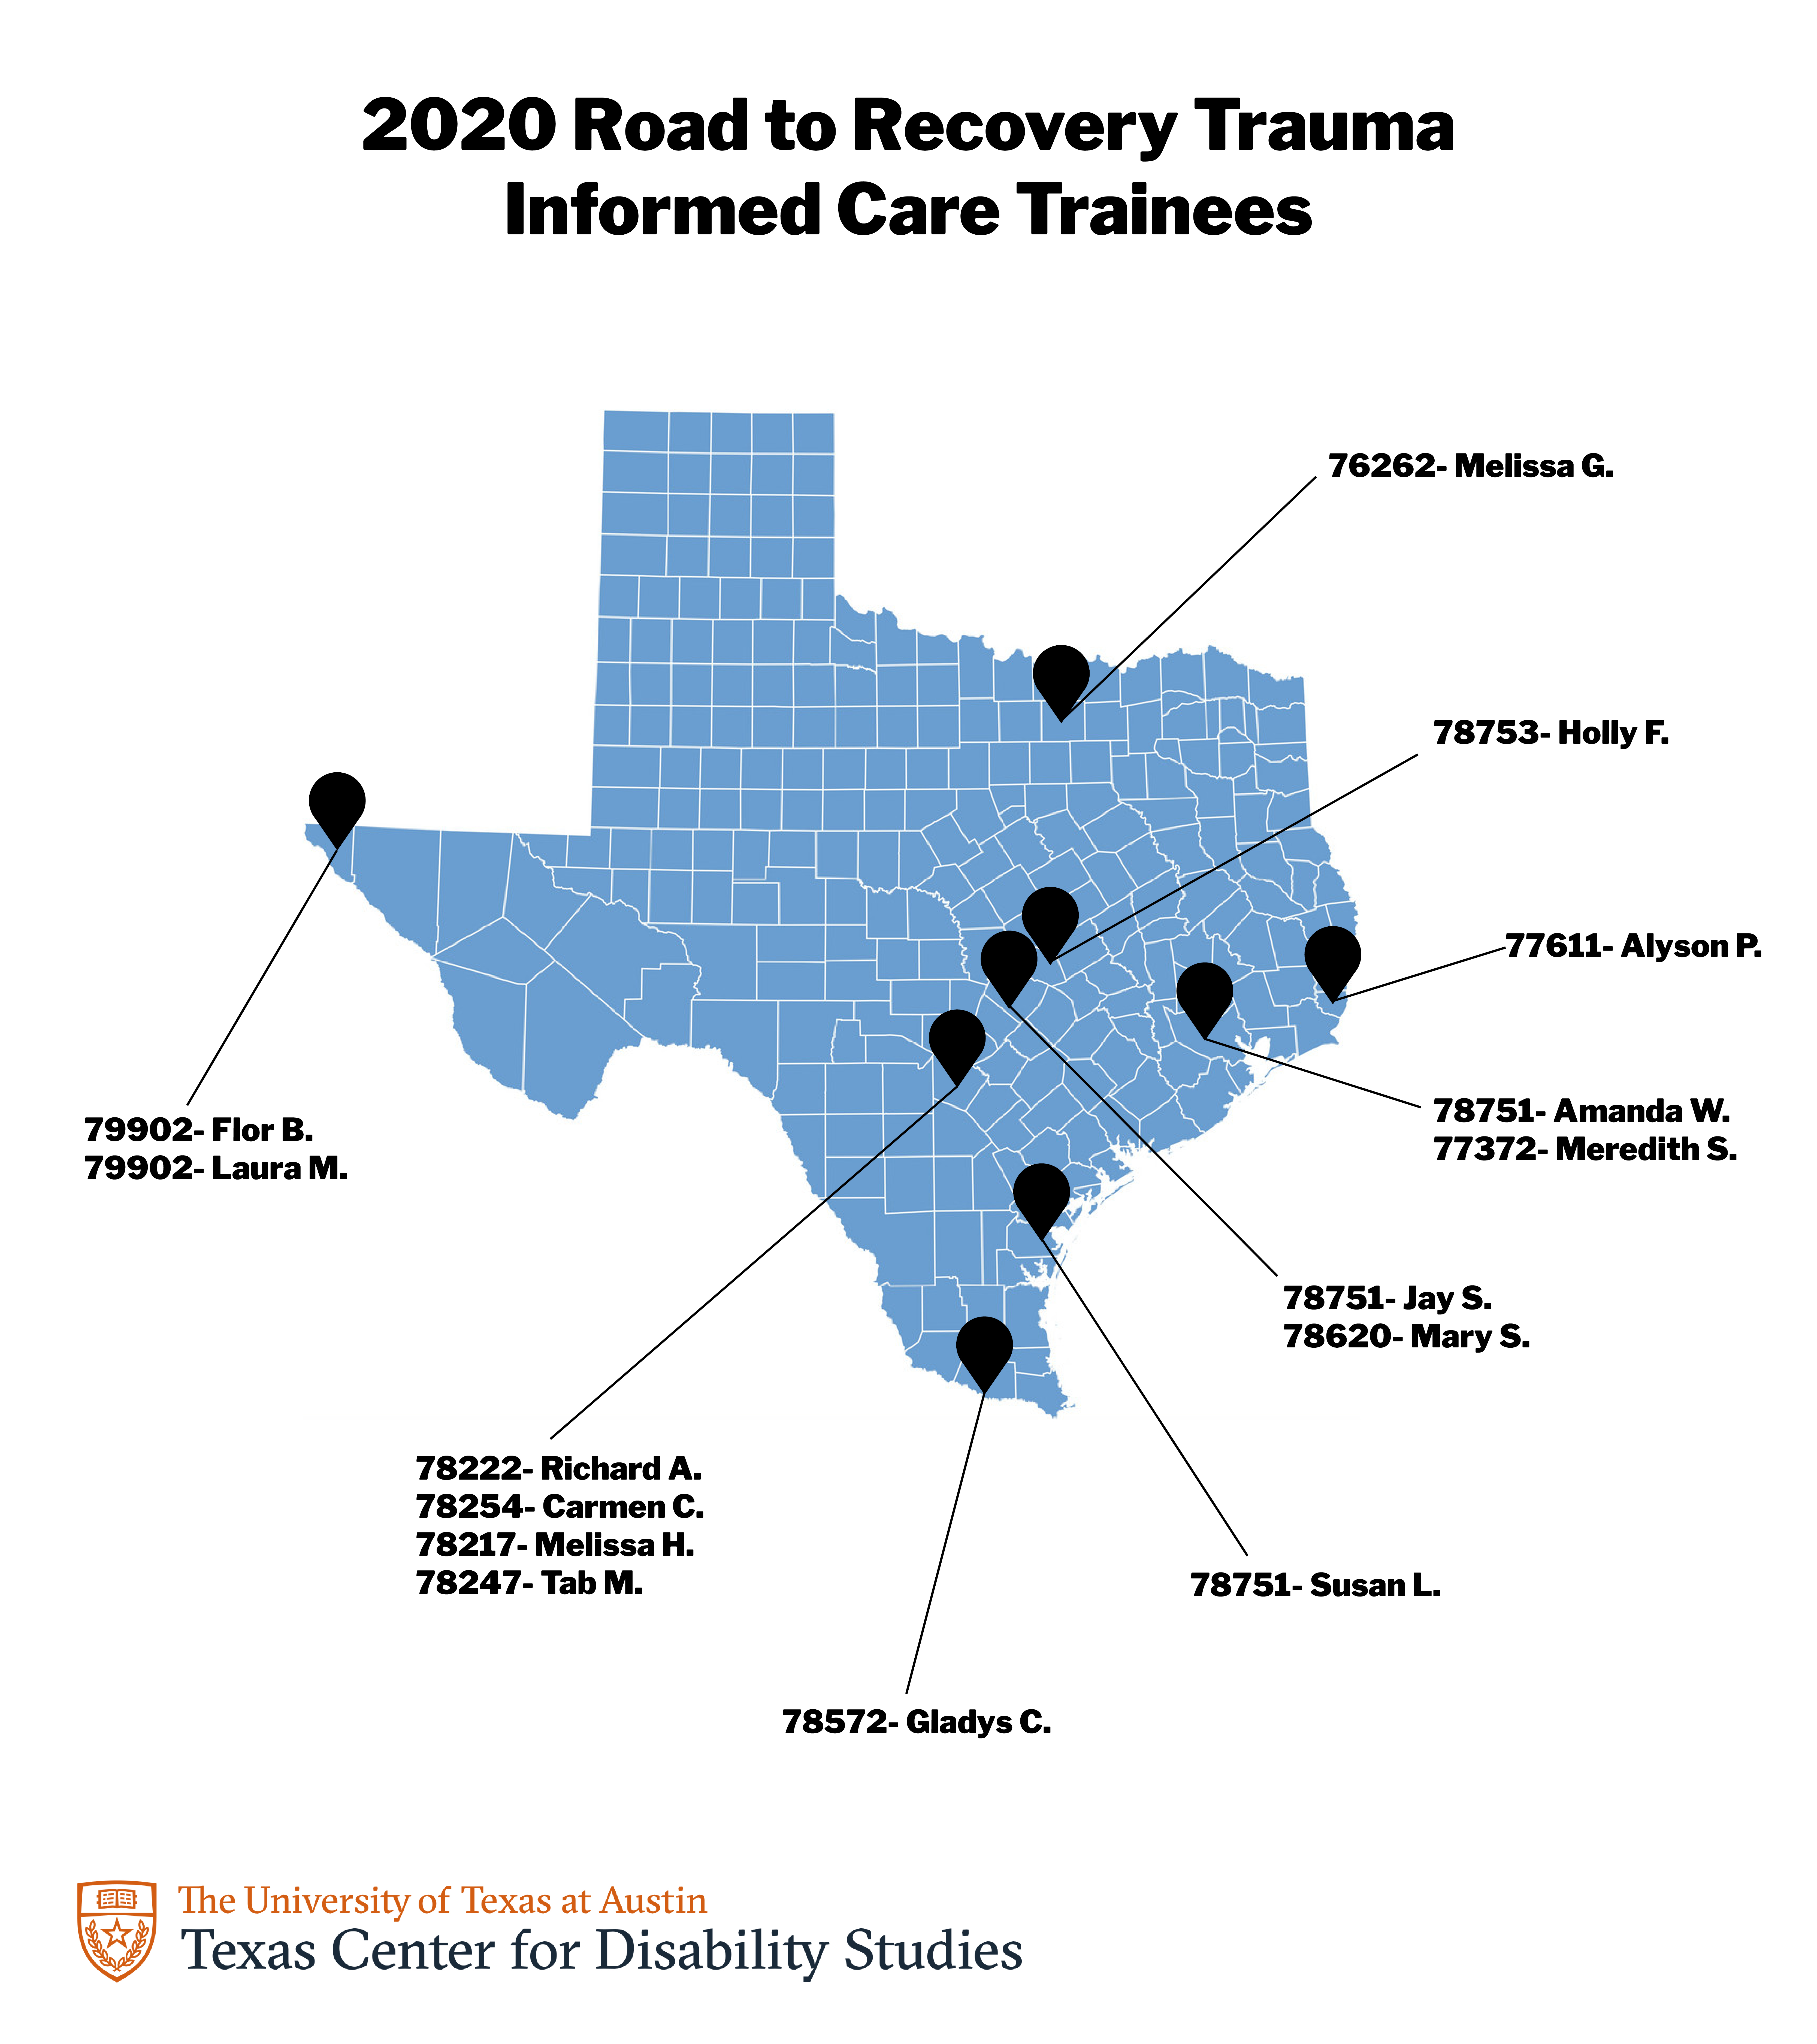 A map of Texas highlighting locations of the current Road to Recovery trainees